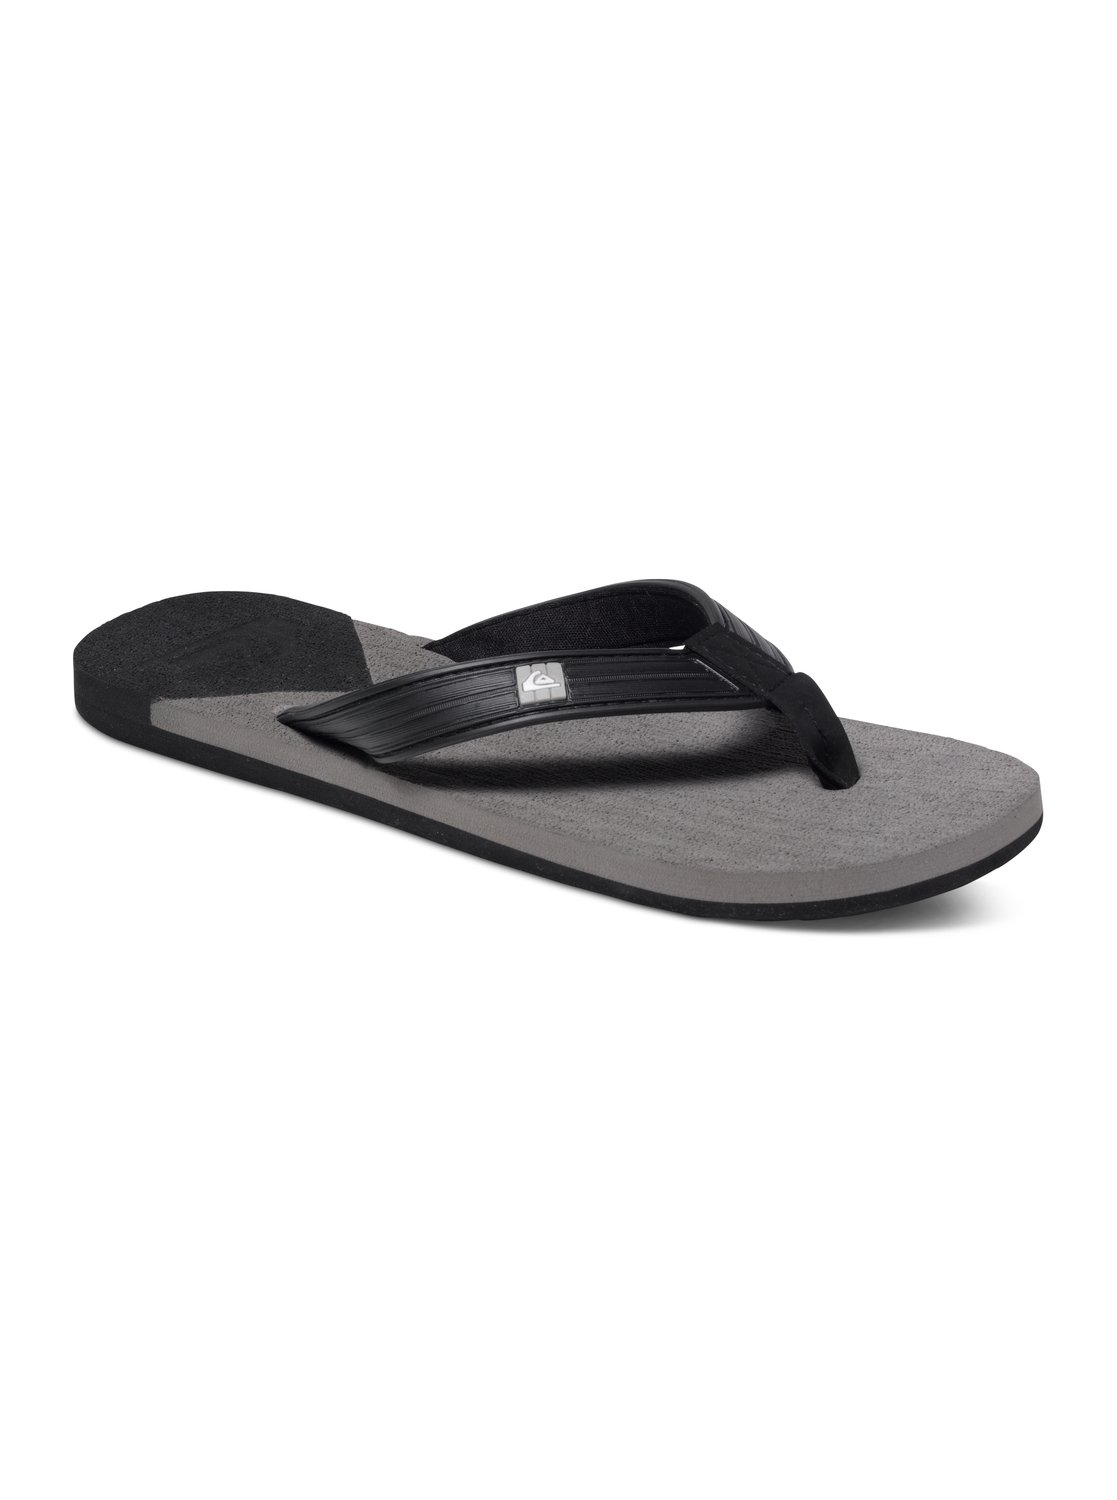 Quiksilver Molokai New Wave Deluxe Sandals